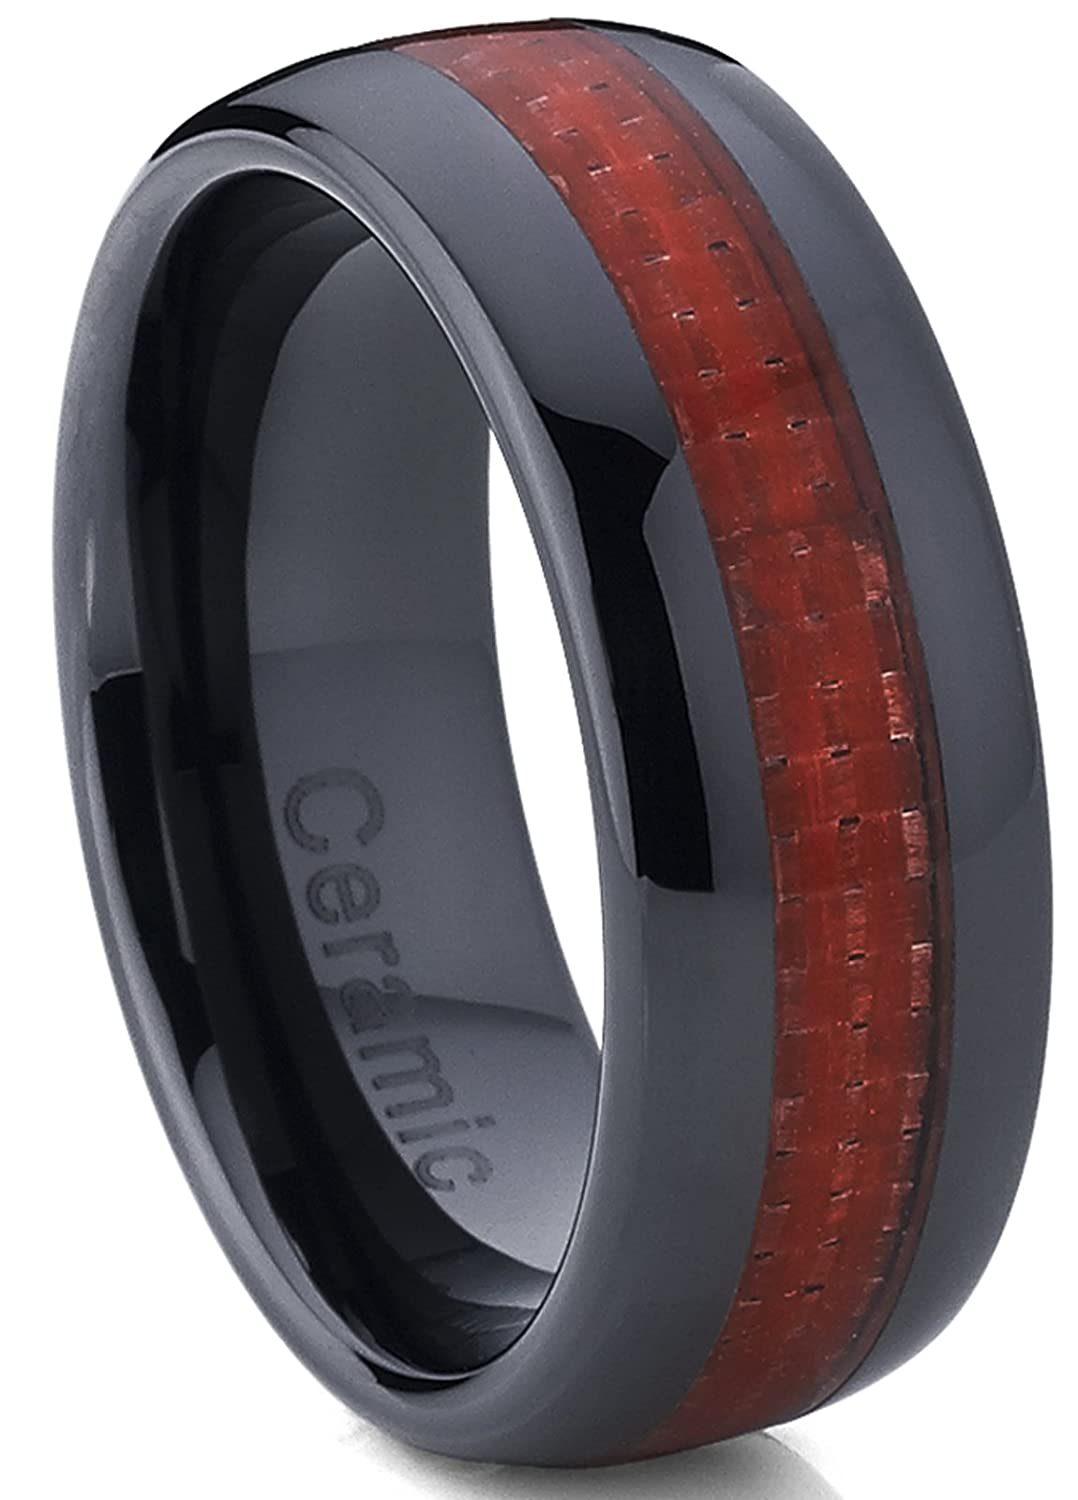 bands wedding rings silver w cool tungsten diagonal band ceramic edges and photo ring wholesale aluminum anodized with products finish brushed beveled red polished inner